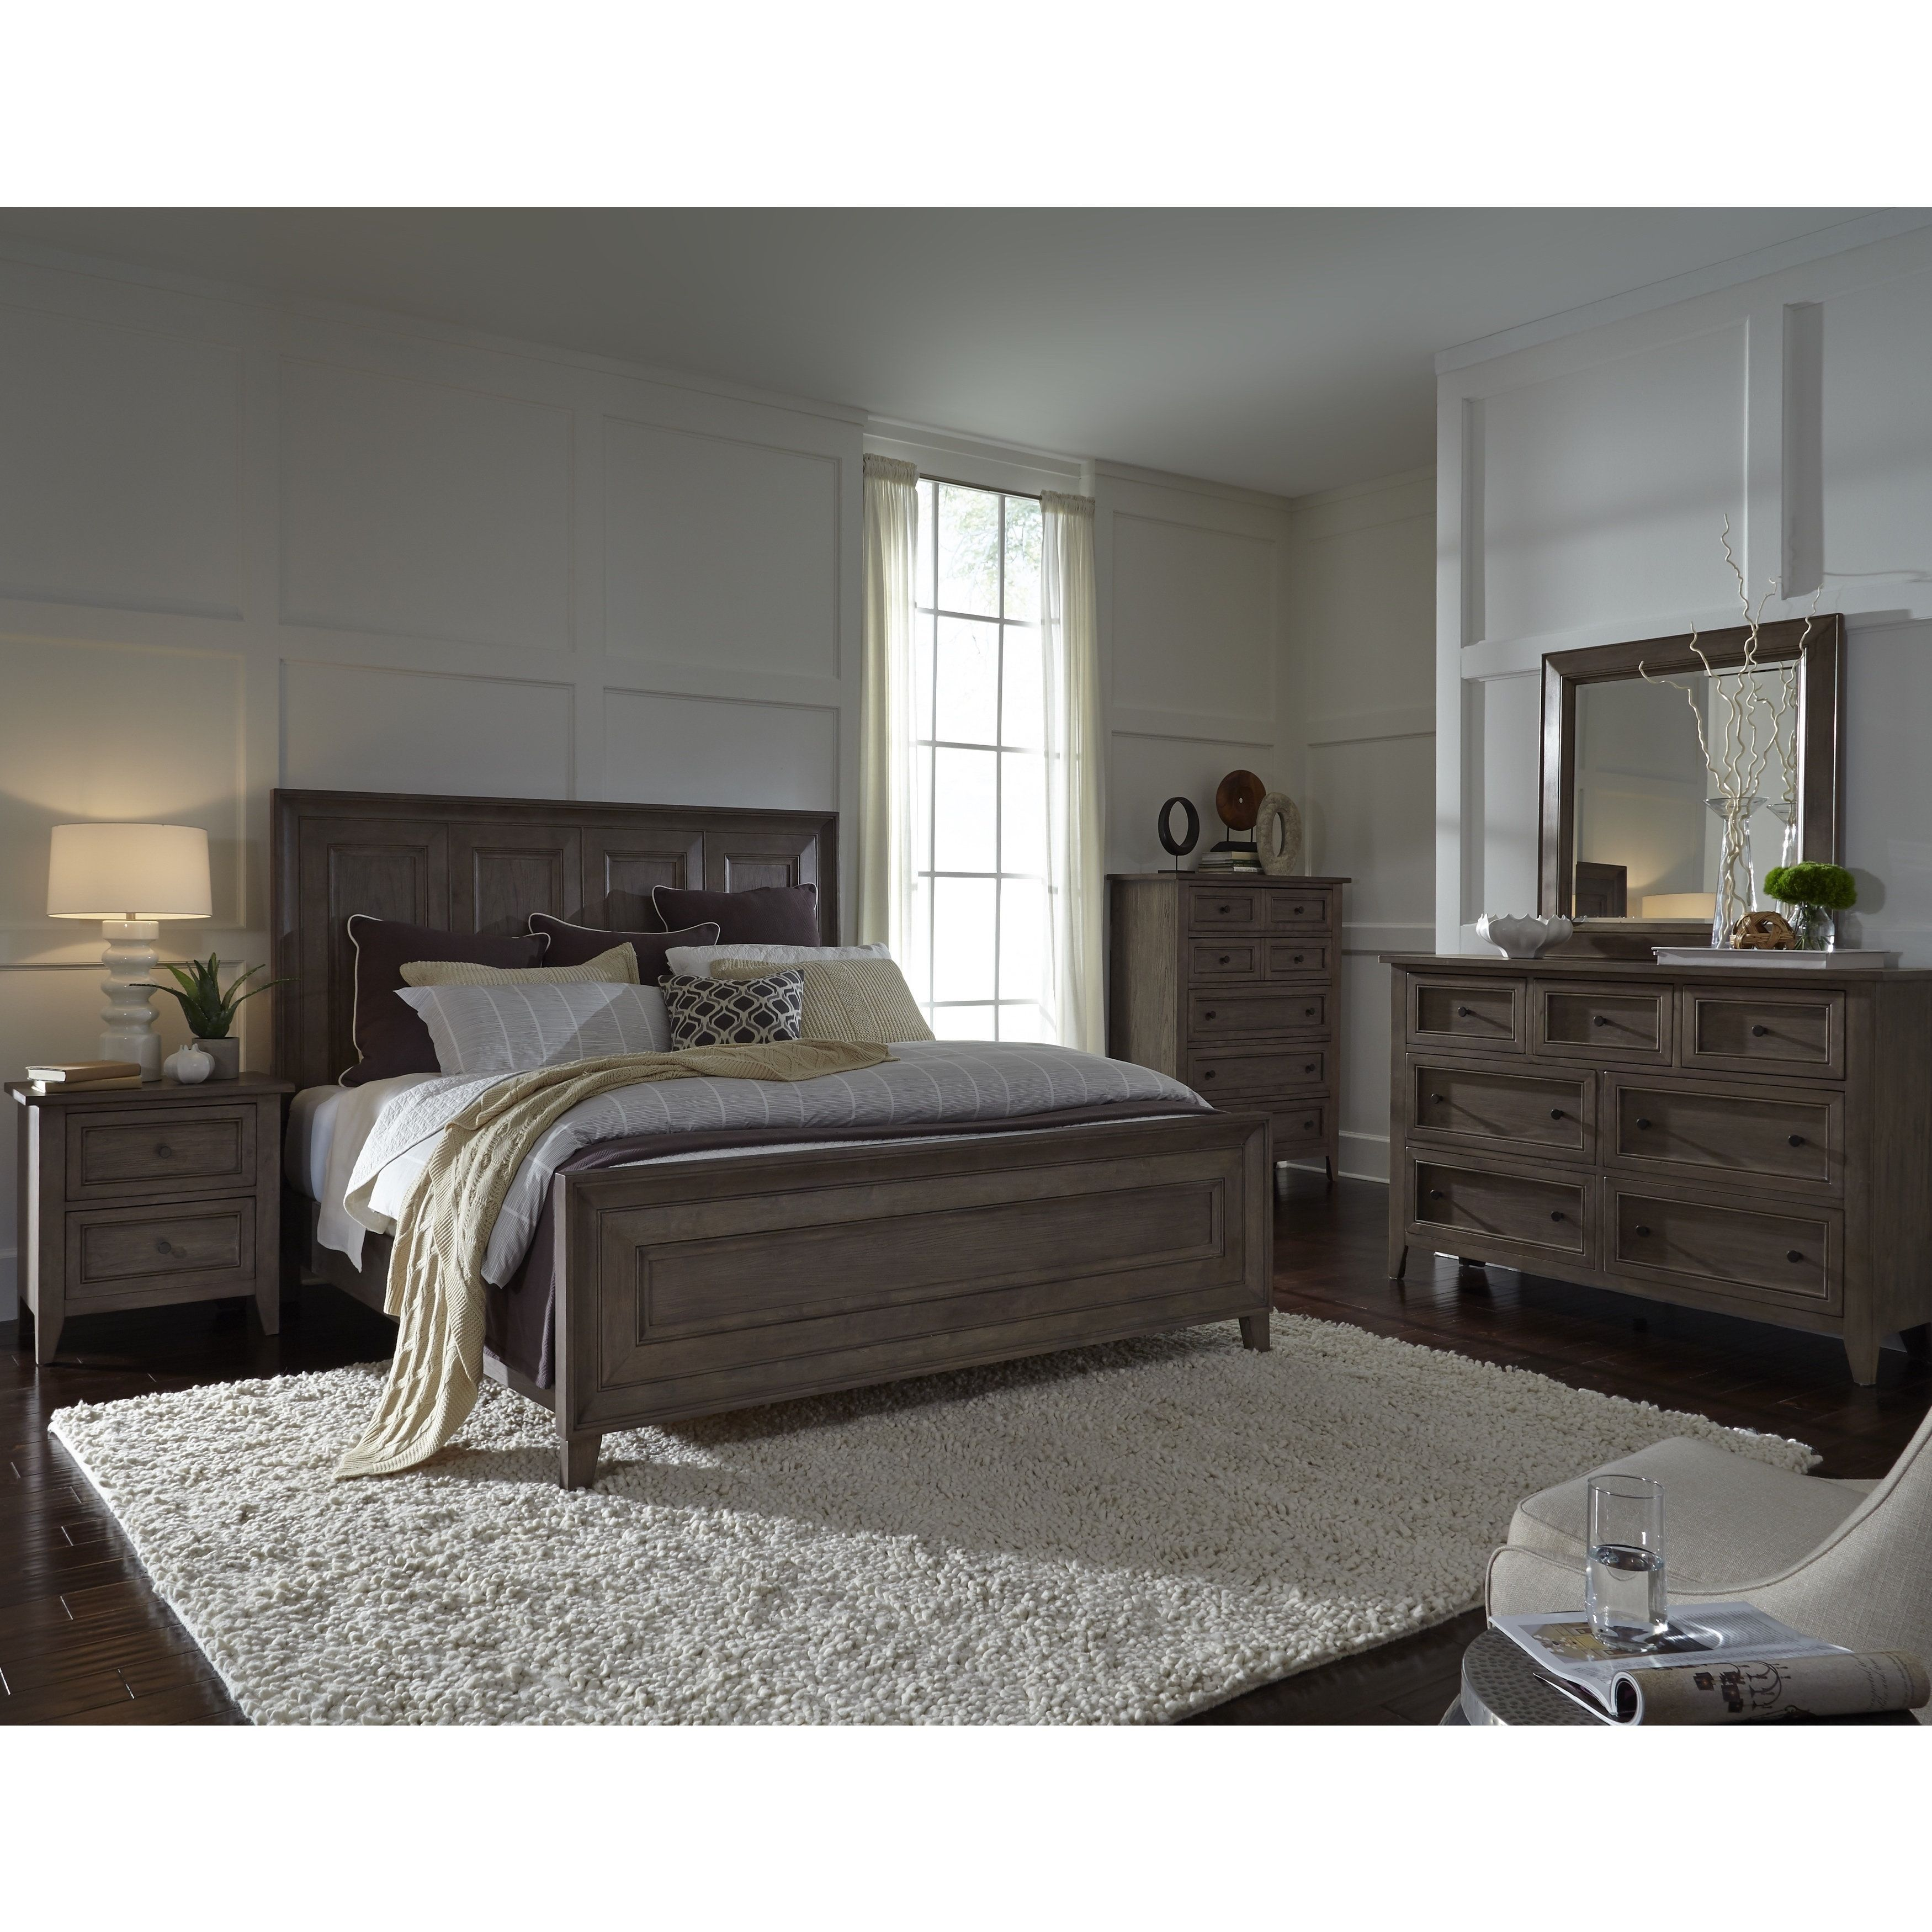 Magnussen Home Furnishings Talbot Driftwood Finish Wood And Veneer Queen Panel Bed Beige